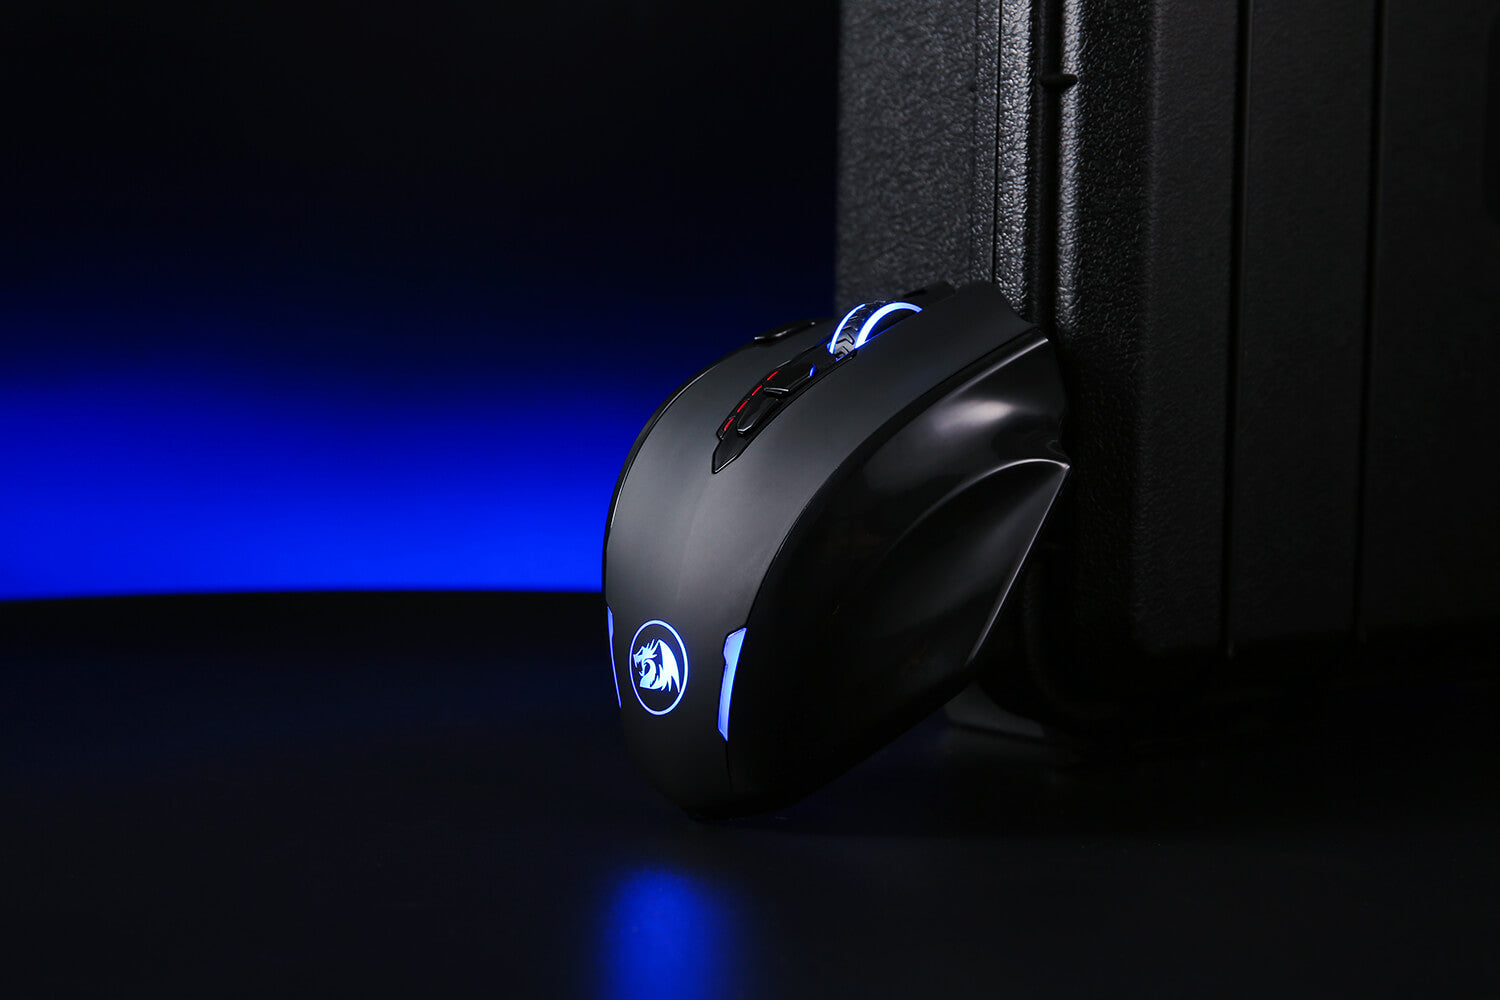 m913 redragon wireless mouse